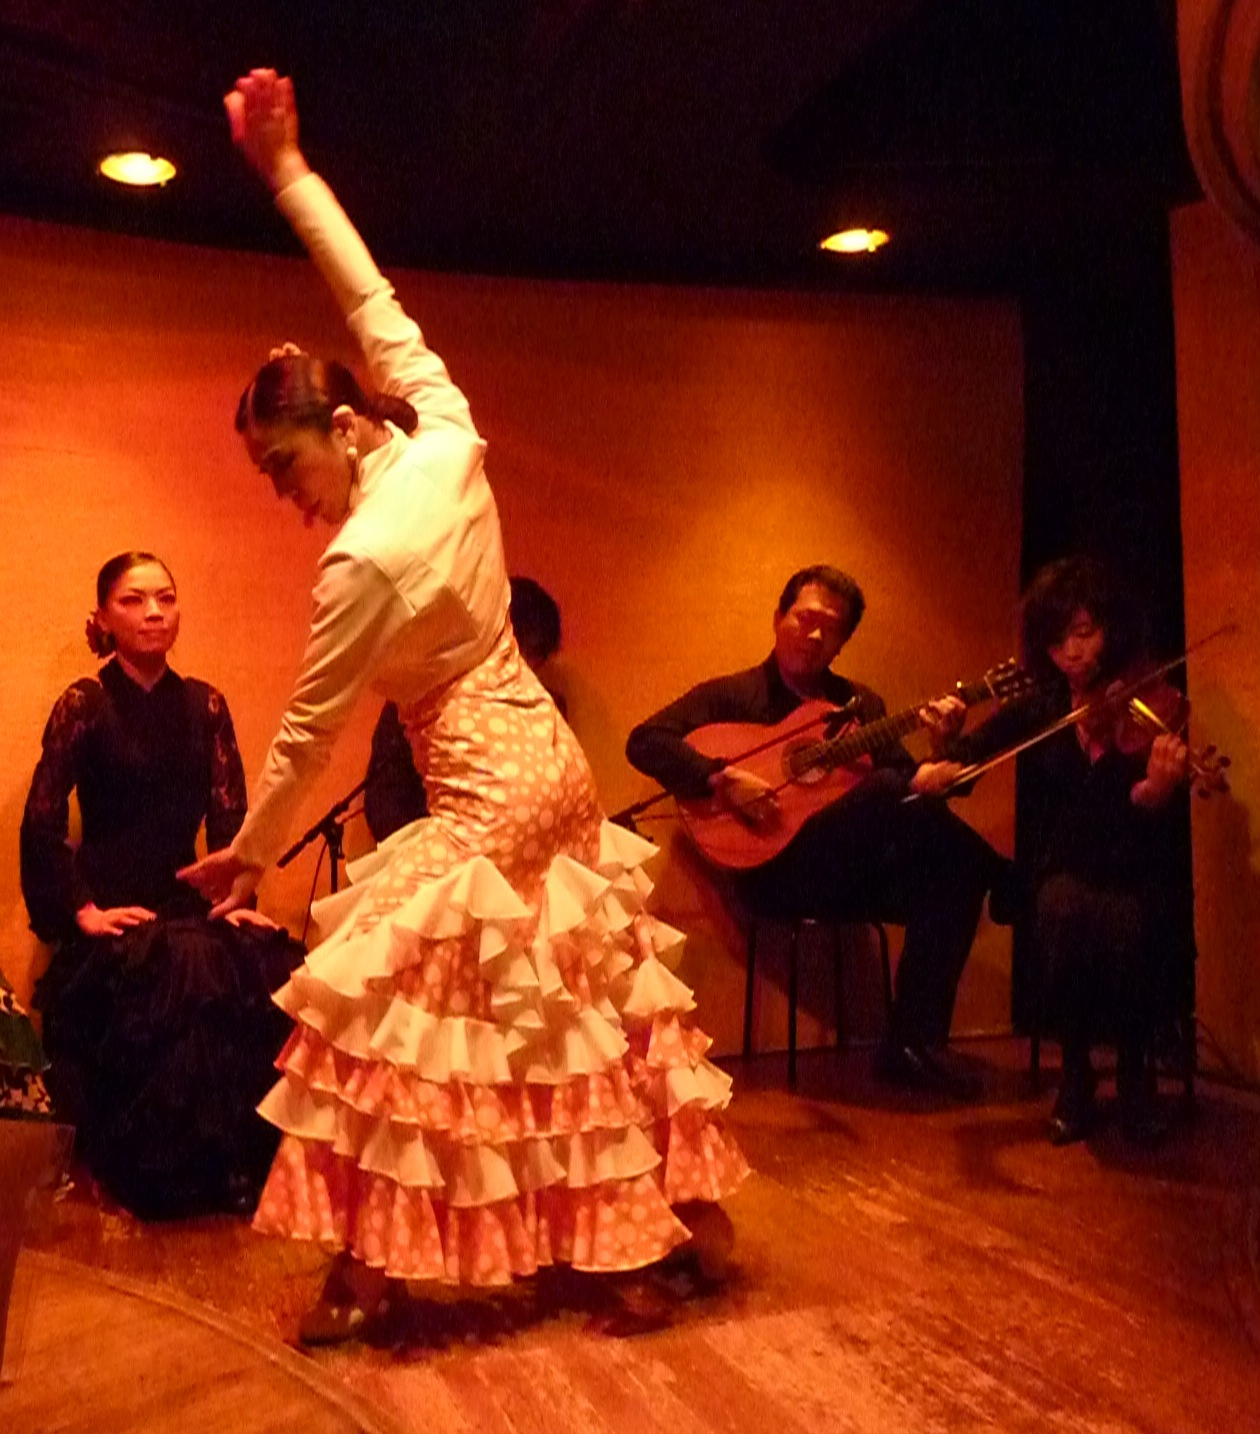 Domingo Flamenco@赤坂november eleventh_b0131865_4172228.jpg